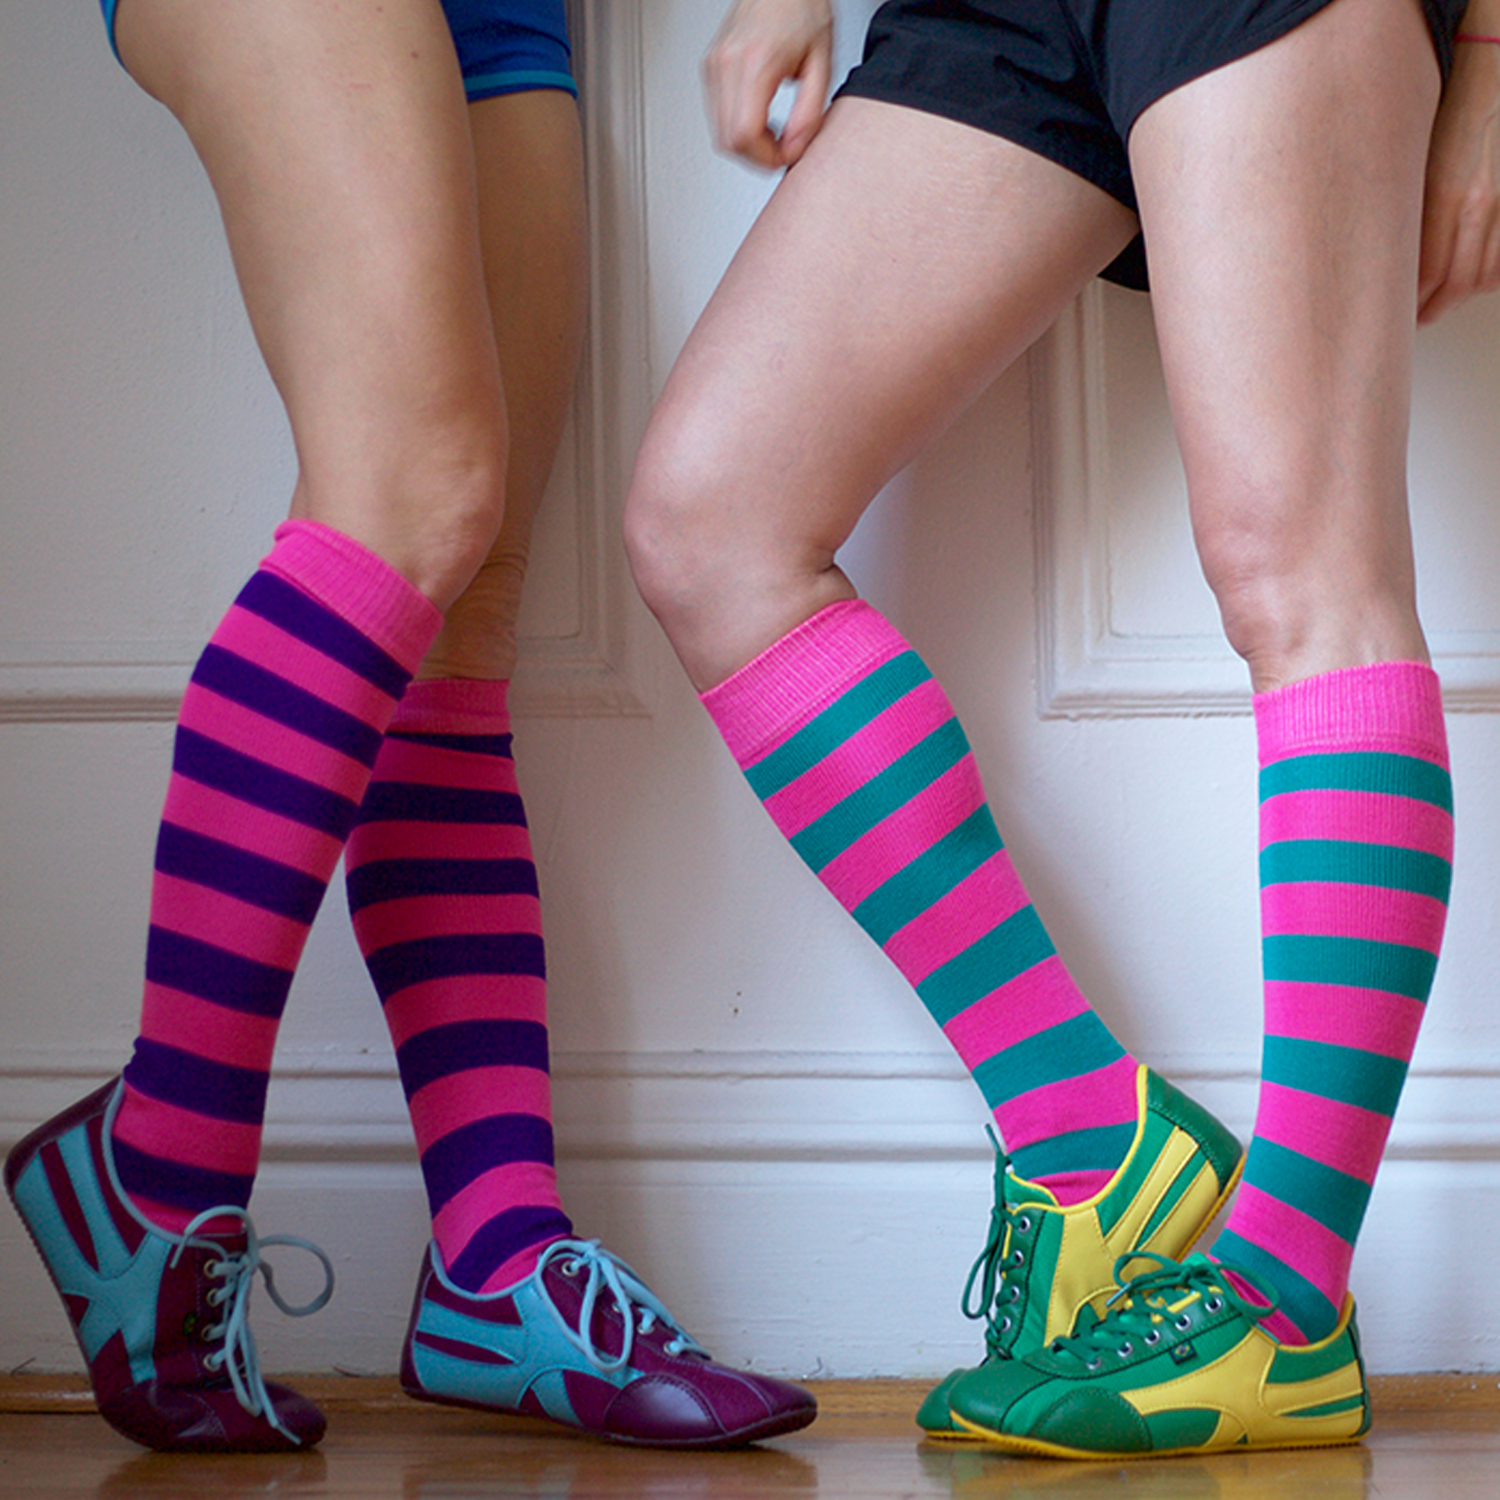 running shoes with striped socks